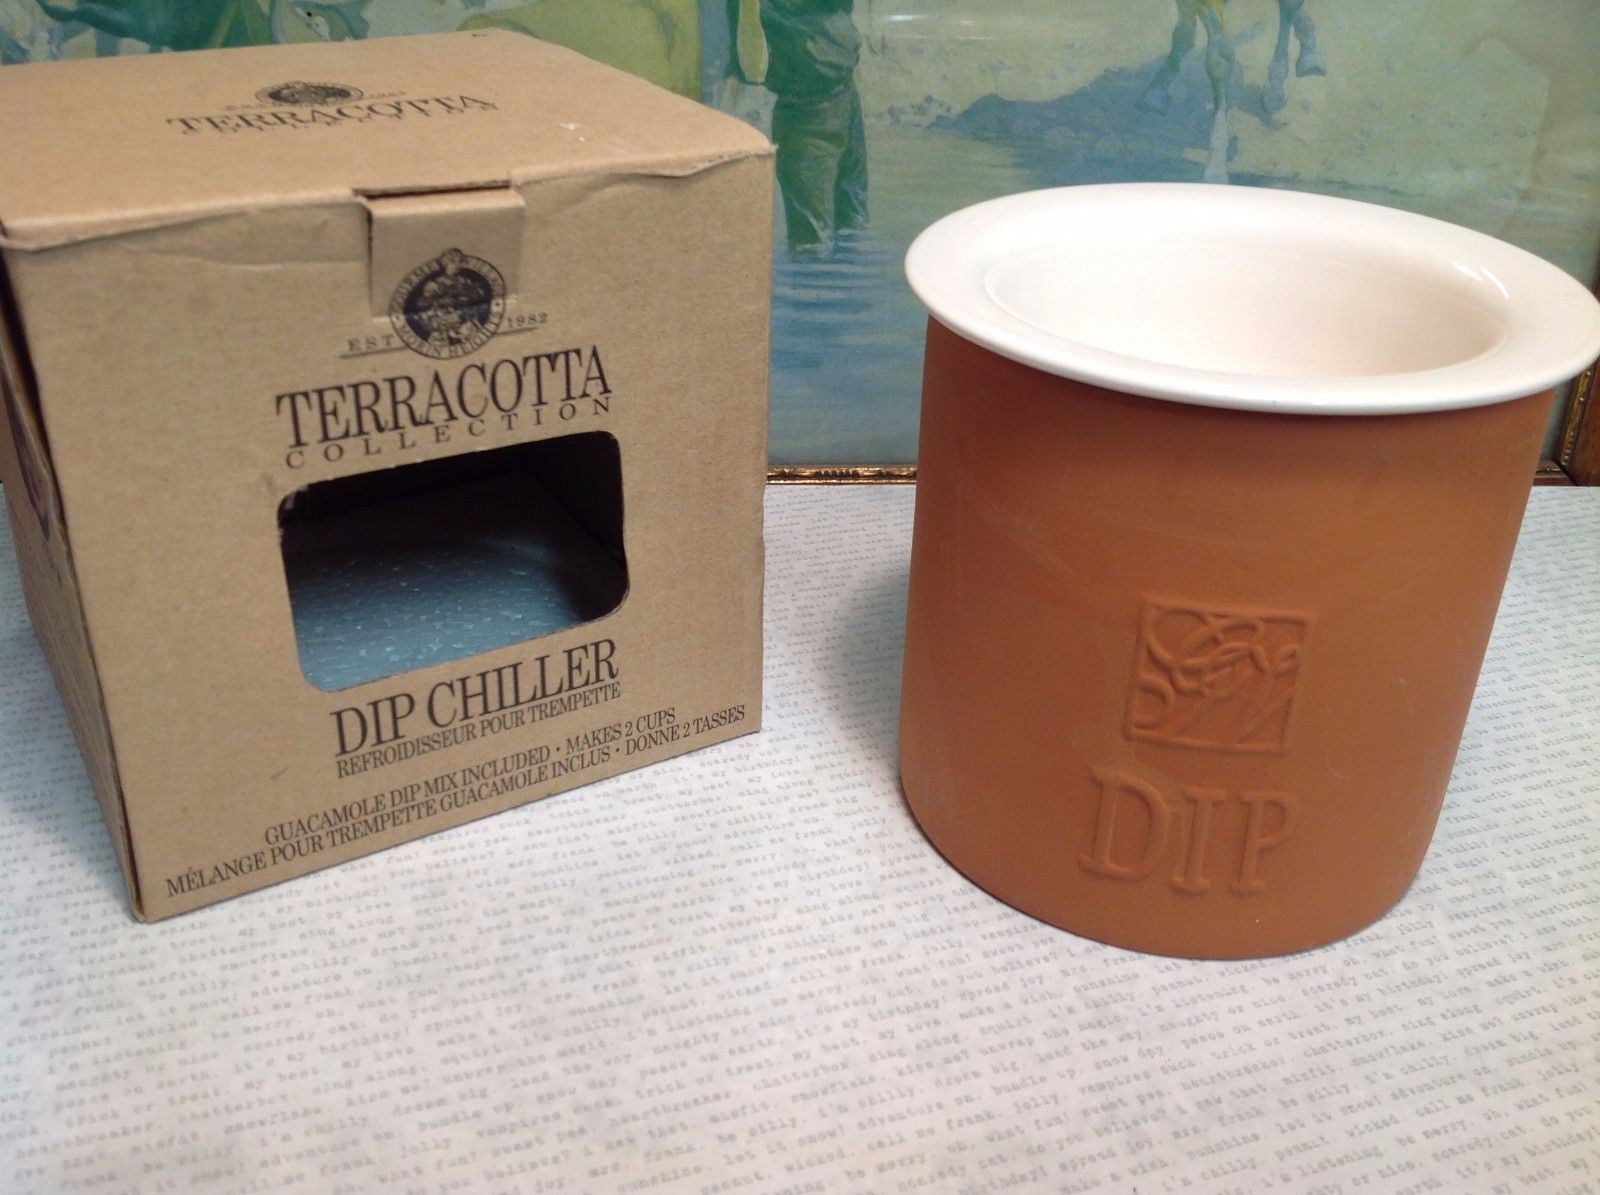 Terracotta Collection Ceramic Dip Chiller